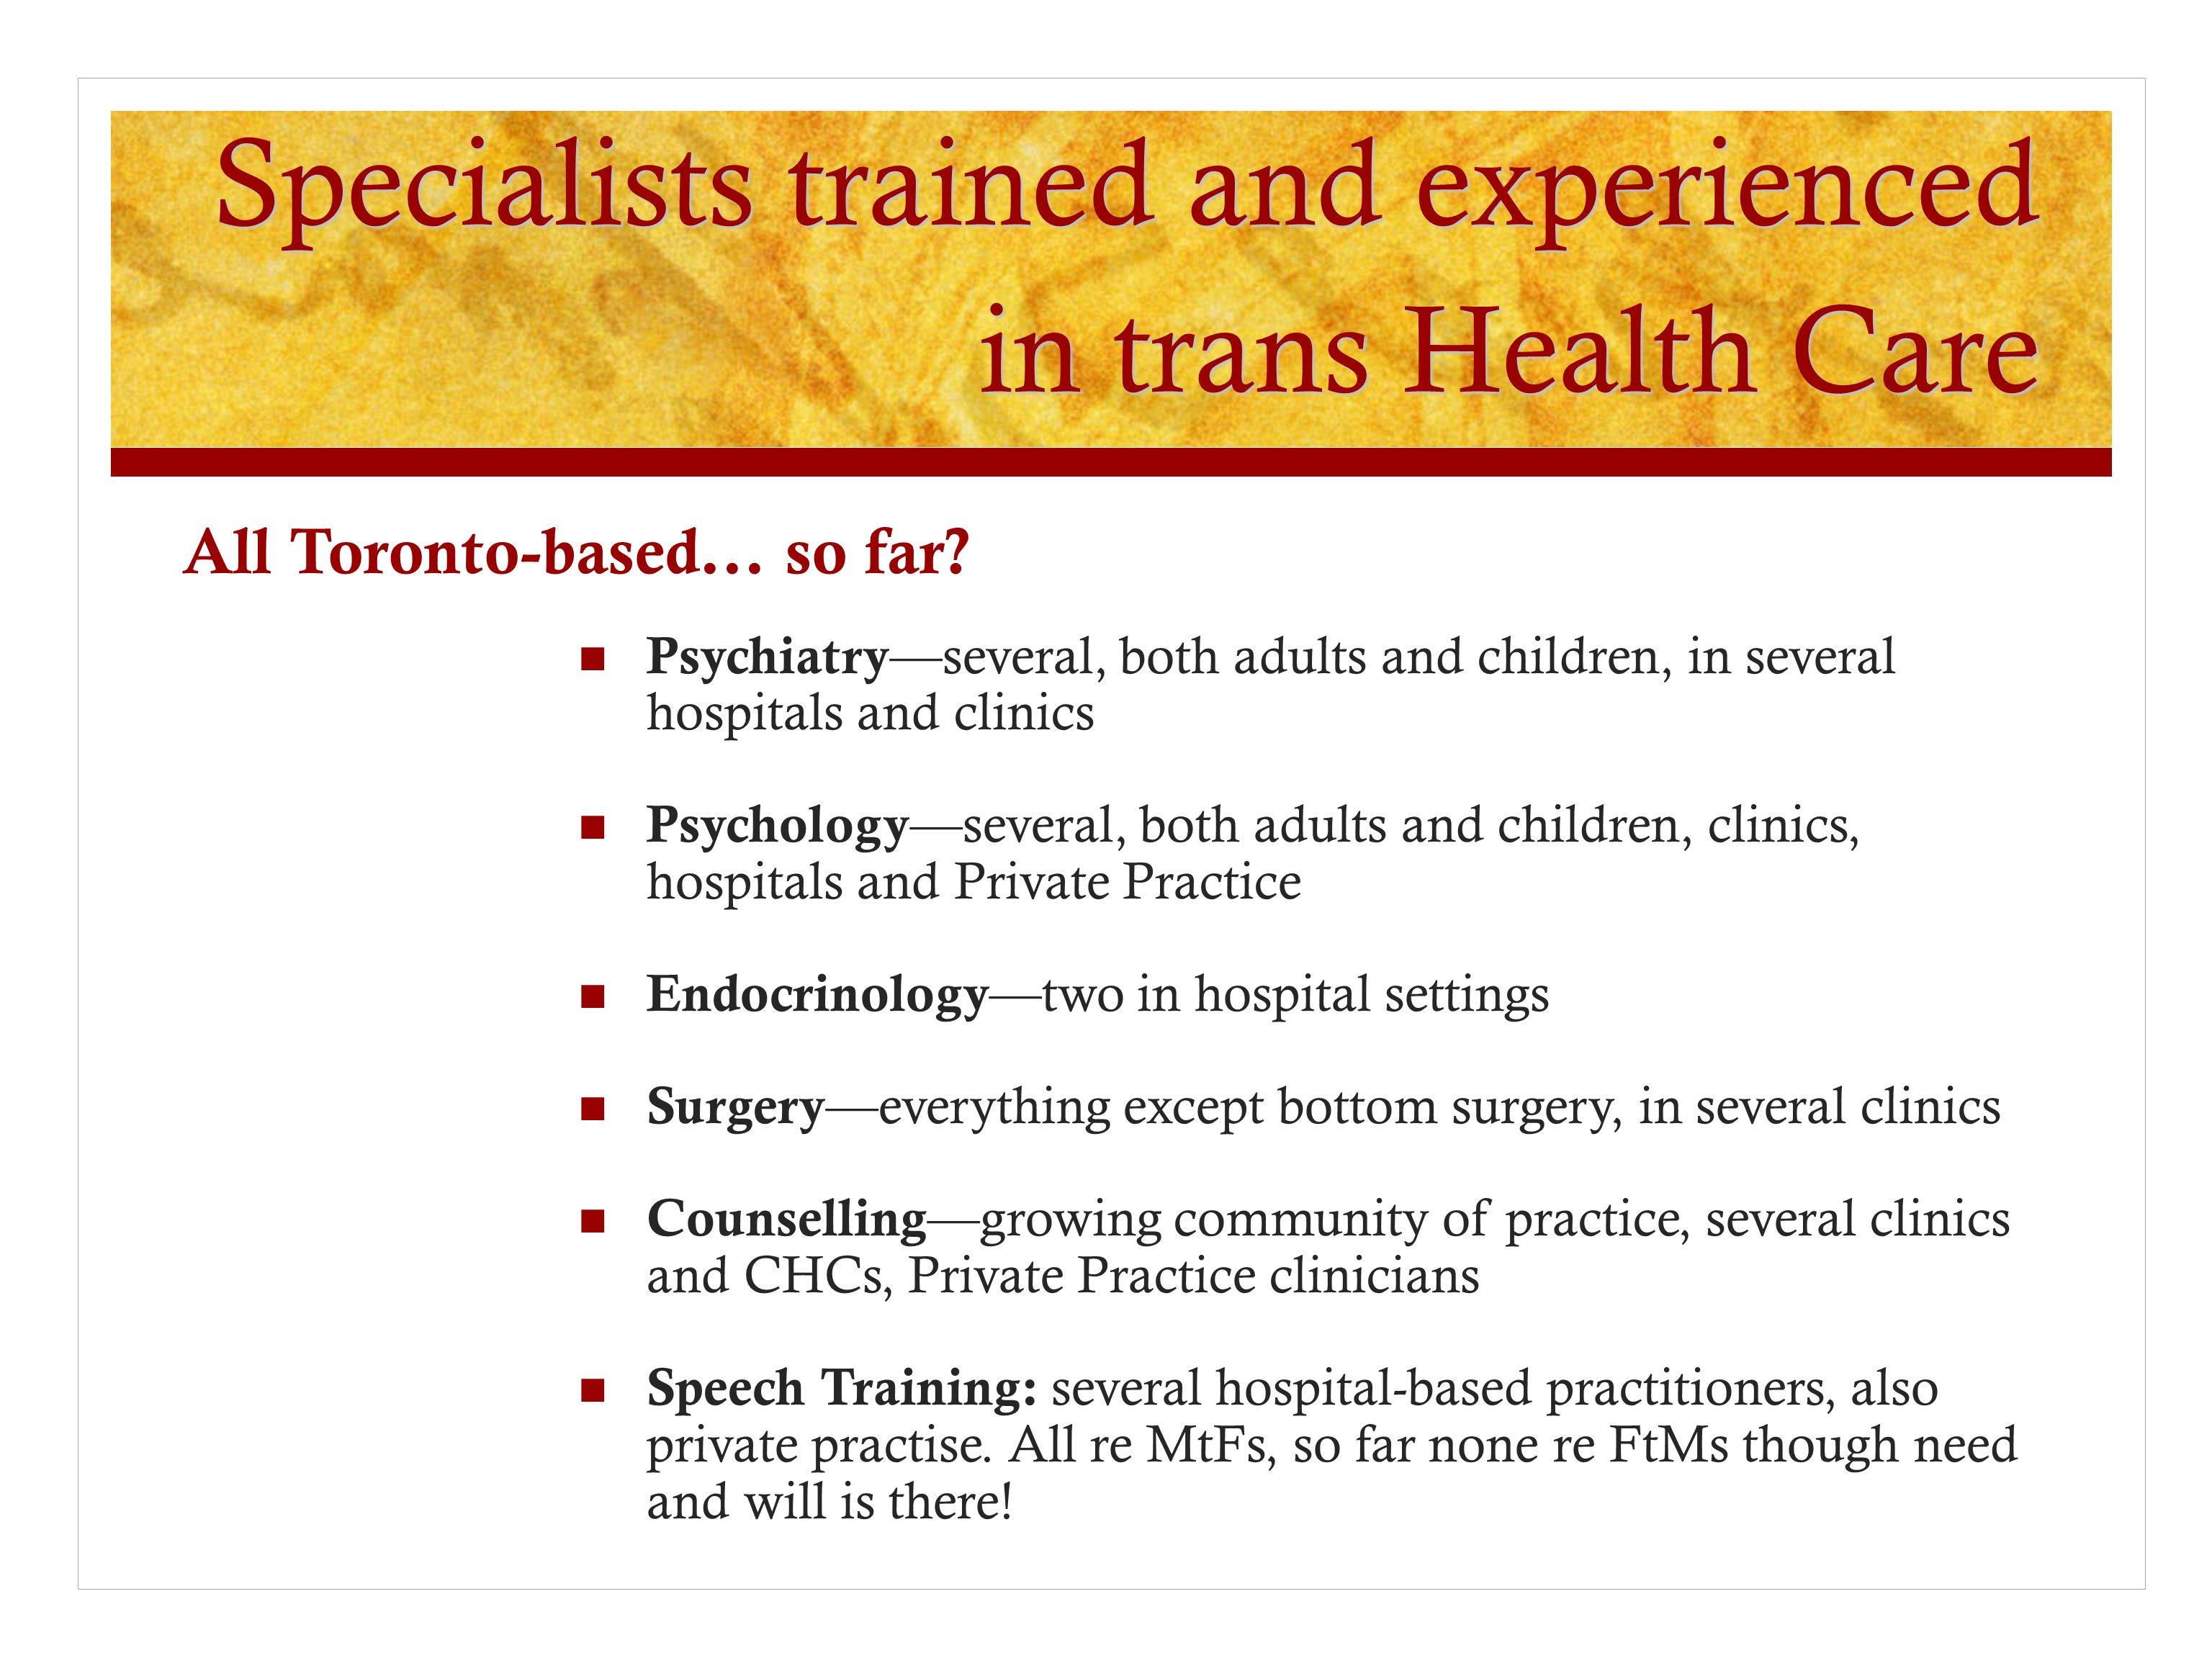 Covered by public funding (OHIP) Primary Health Care Endocrinology Psychiatry Psychology and counseling: only covered in some public clinics and CHCs.